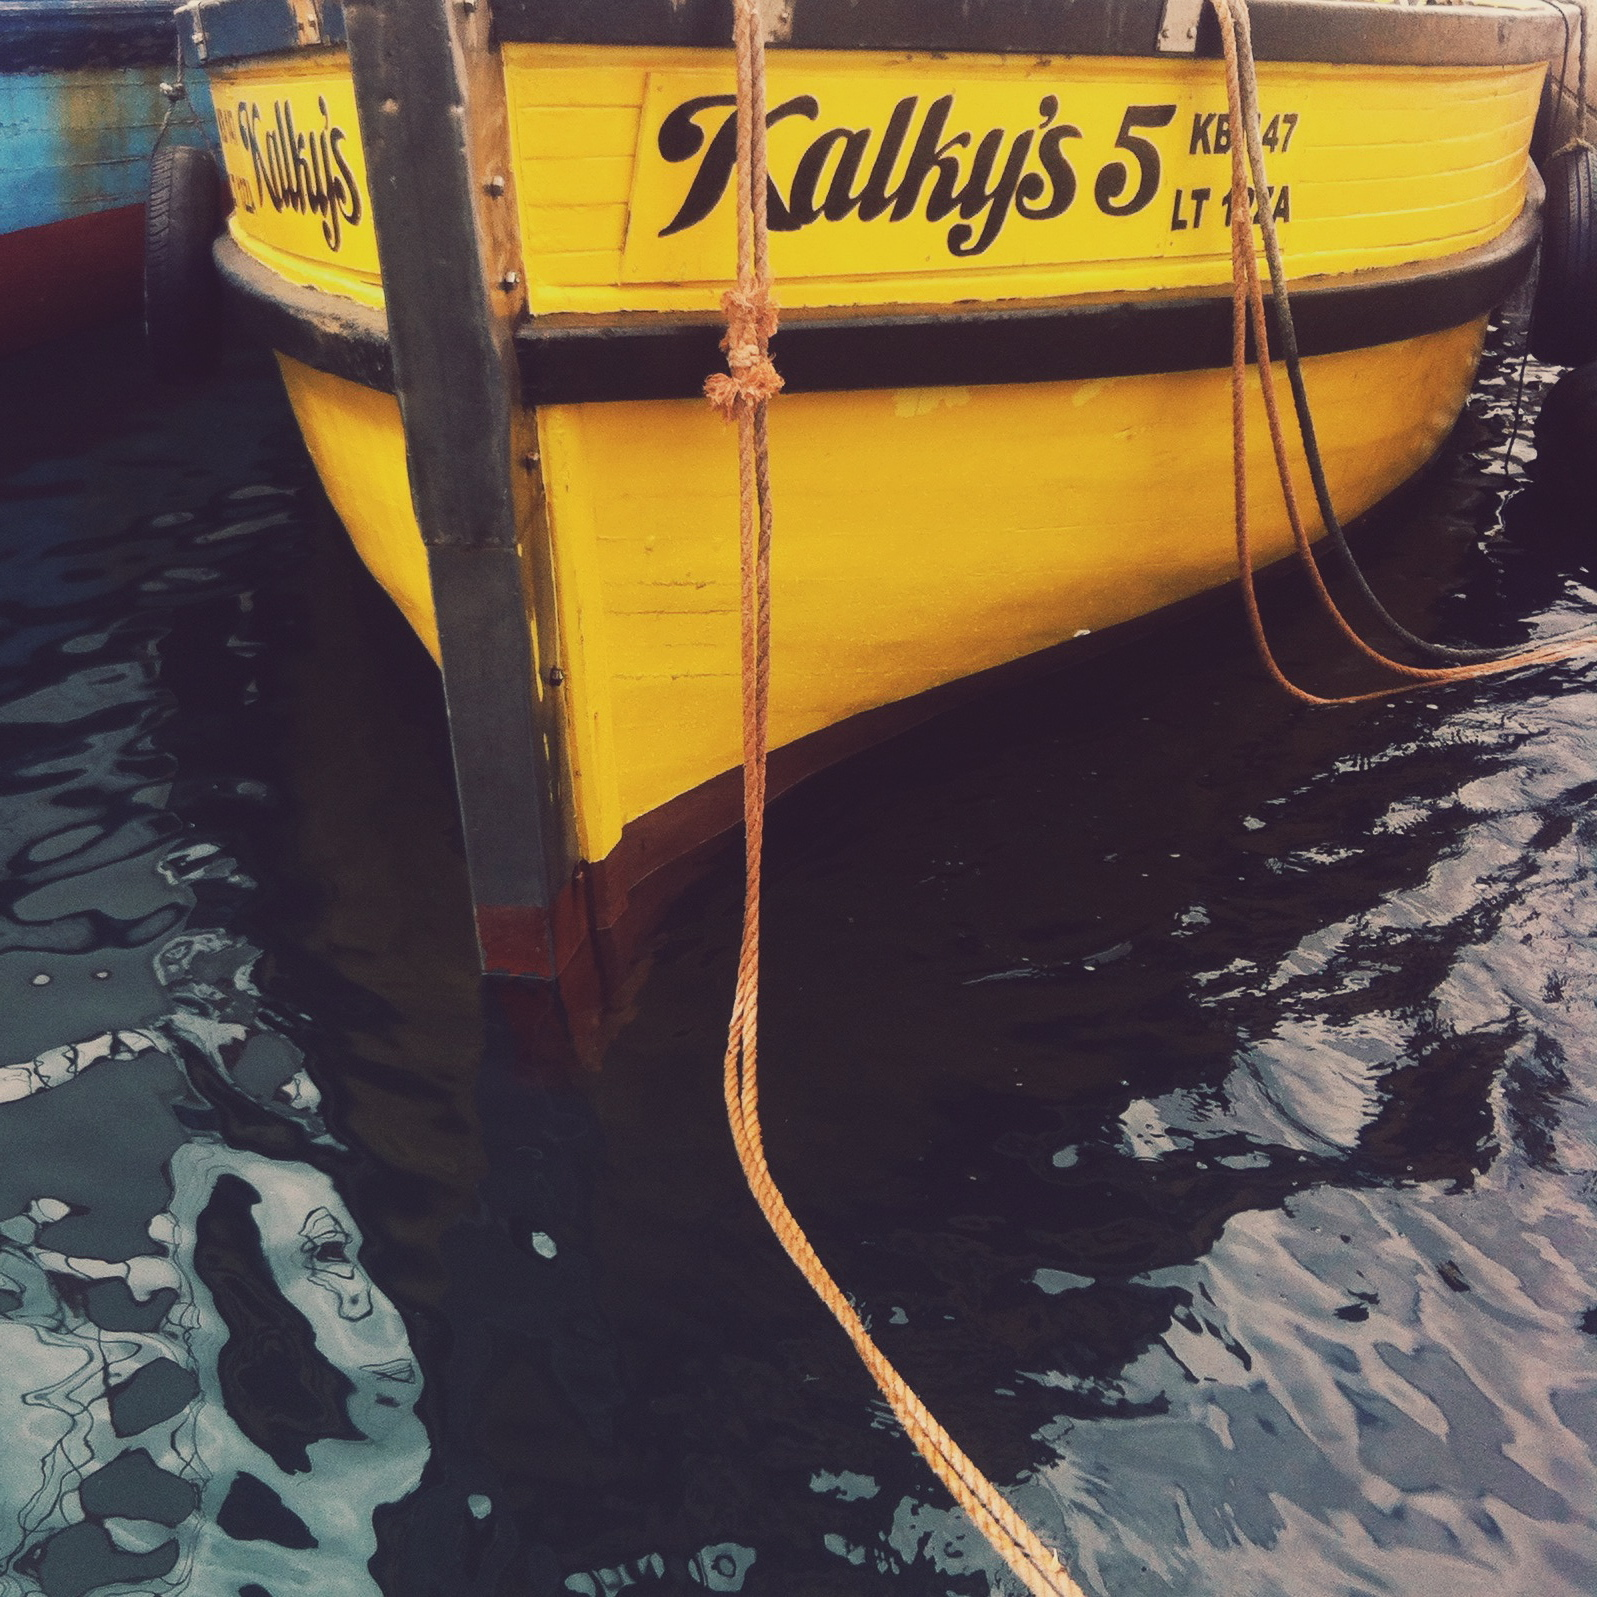 One of the many brightly painted fishing boats docked at the Kalk Bay harbour.